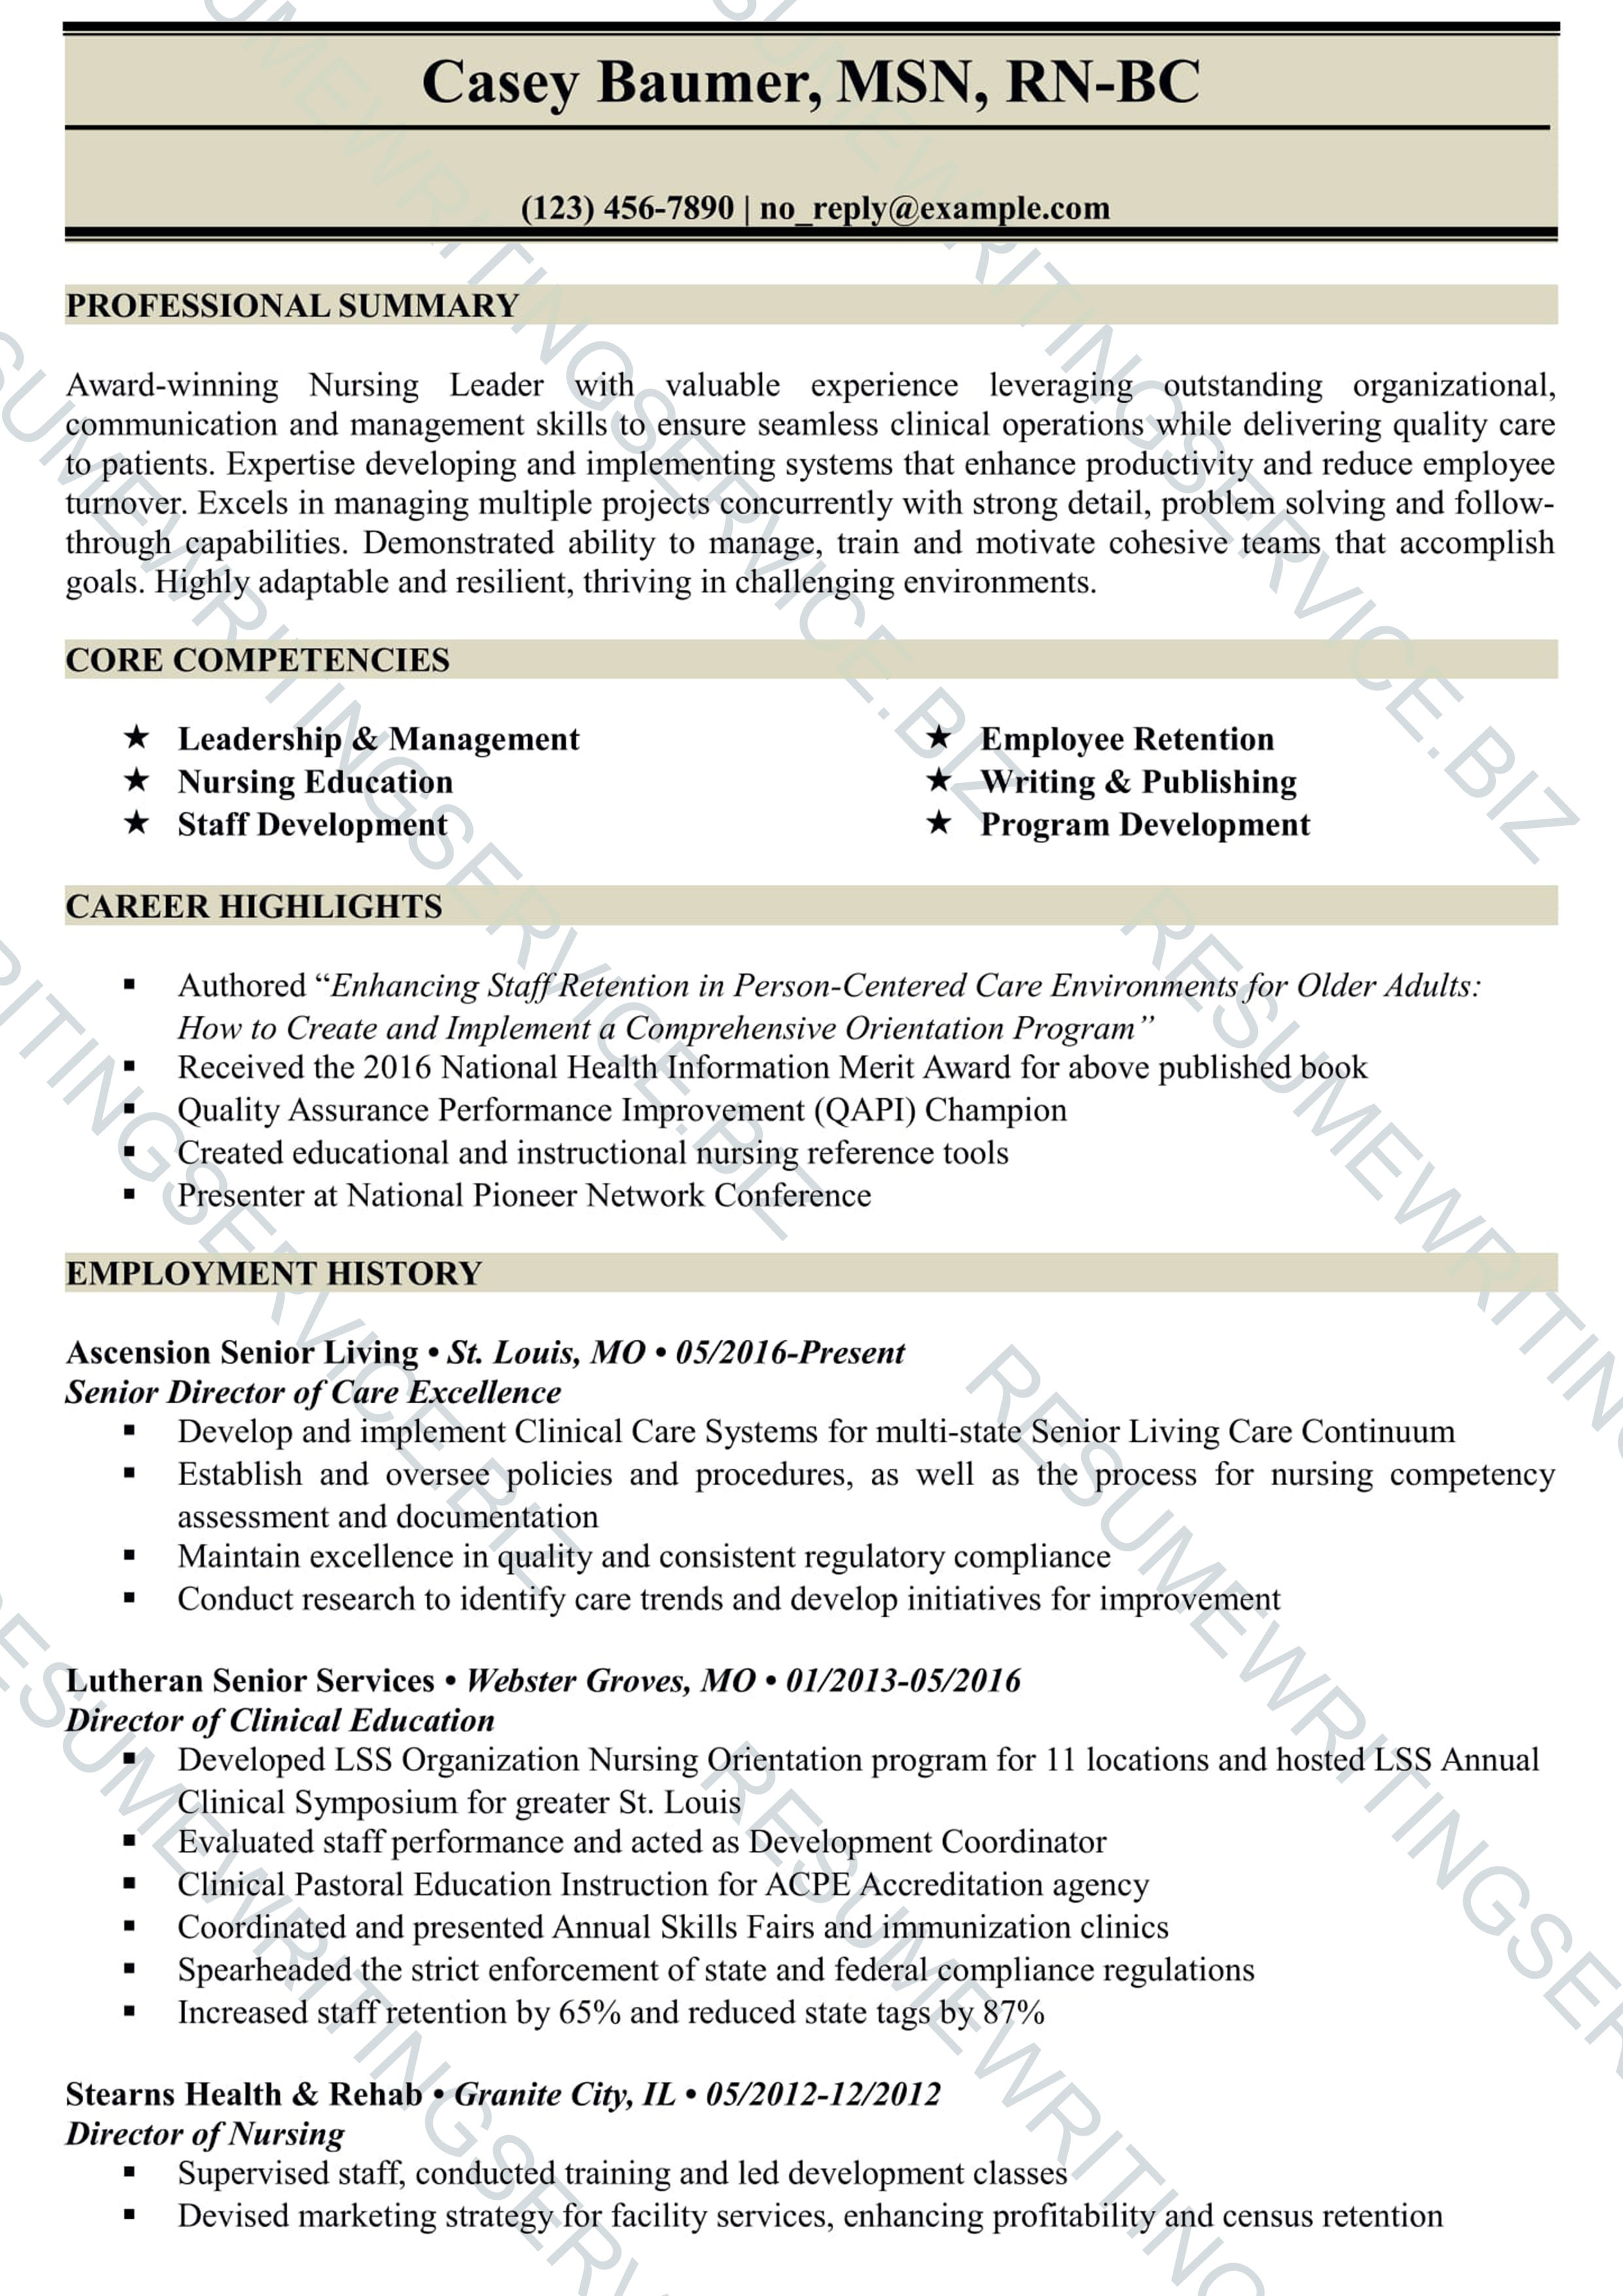 Government Jobs Upload Resume Professional Resume Writer Karyna